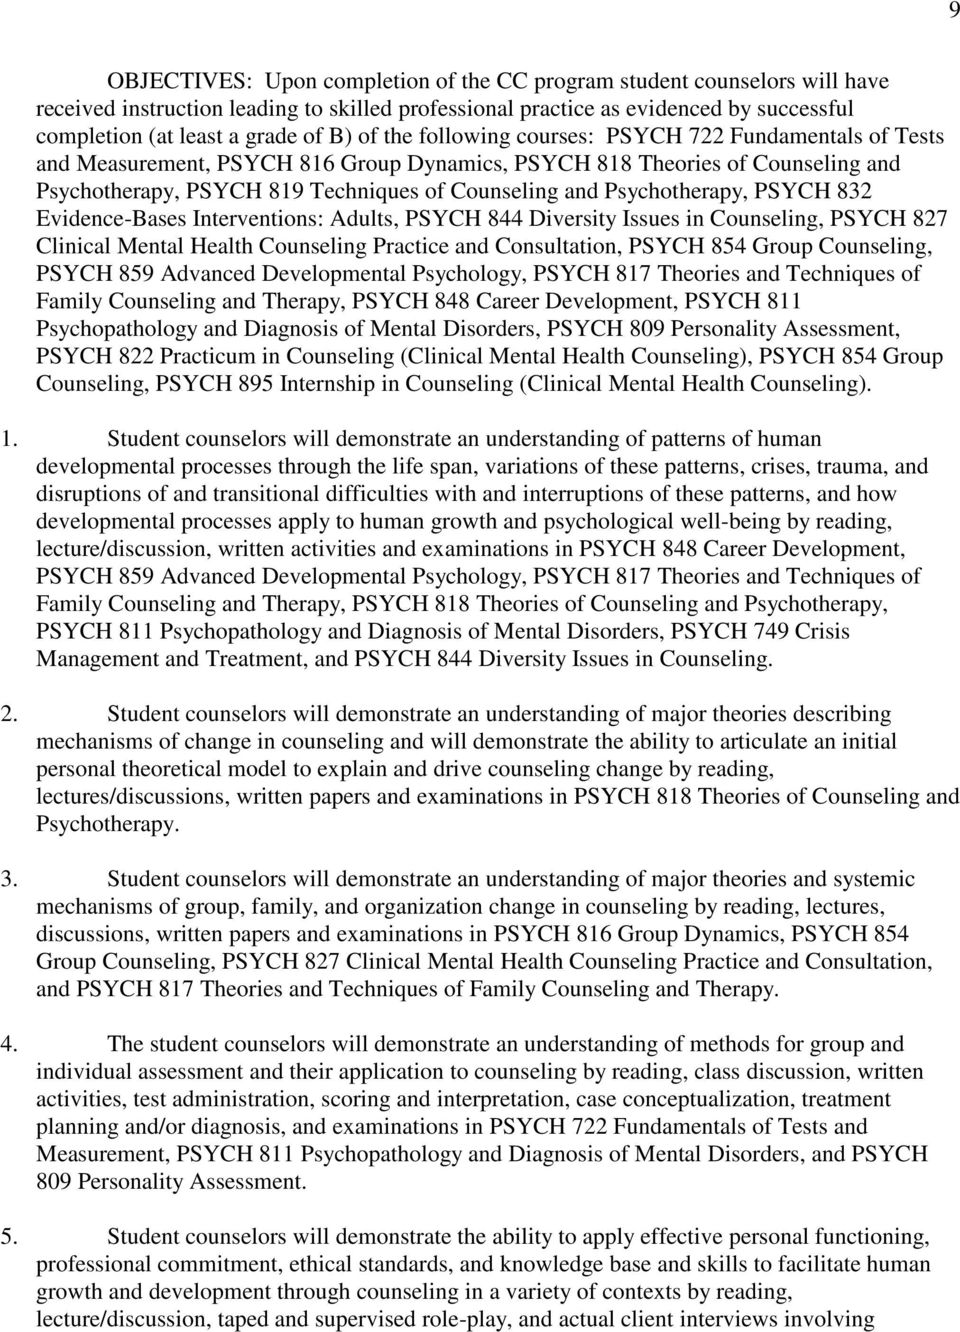 Psychotherapy, PSYCH 832 Evidence-Bases Interventions: Adults, PSYCH 844 Diversity Issues in Counseling, PSYCH 827 Clinical Mental Health Counseling Practice and Consultation, PSYCH 854 Group